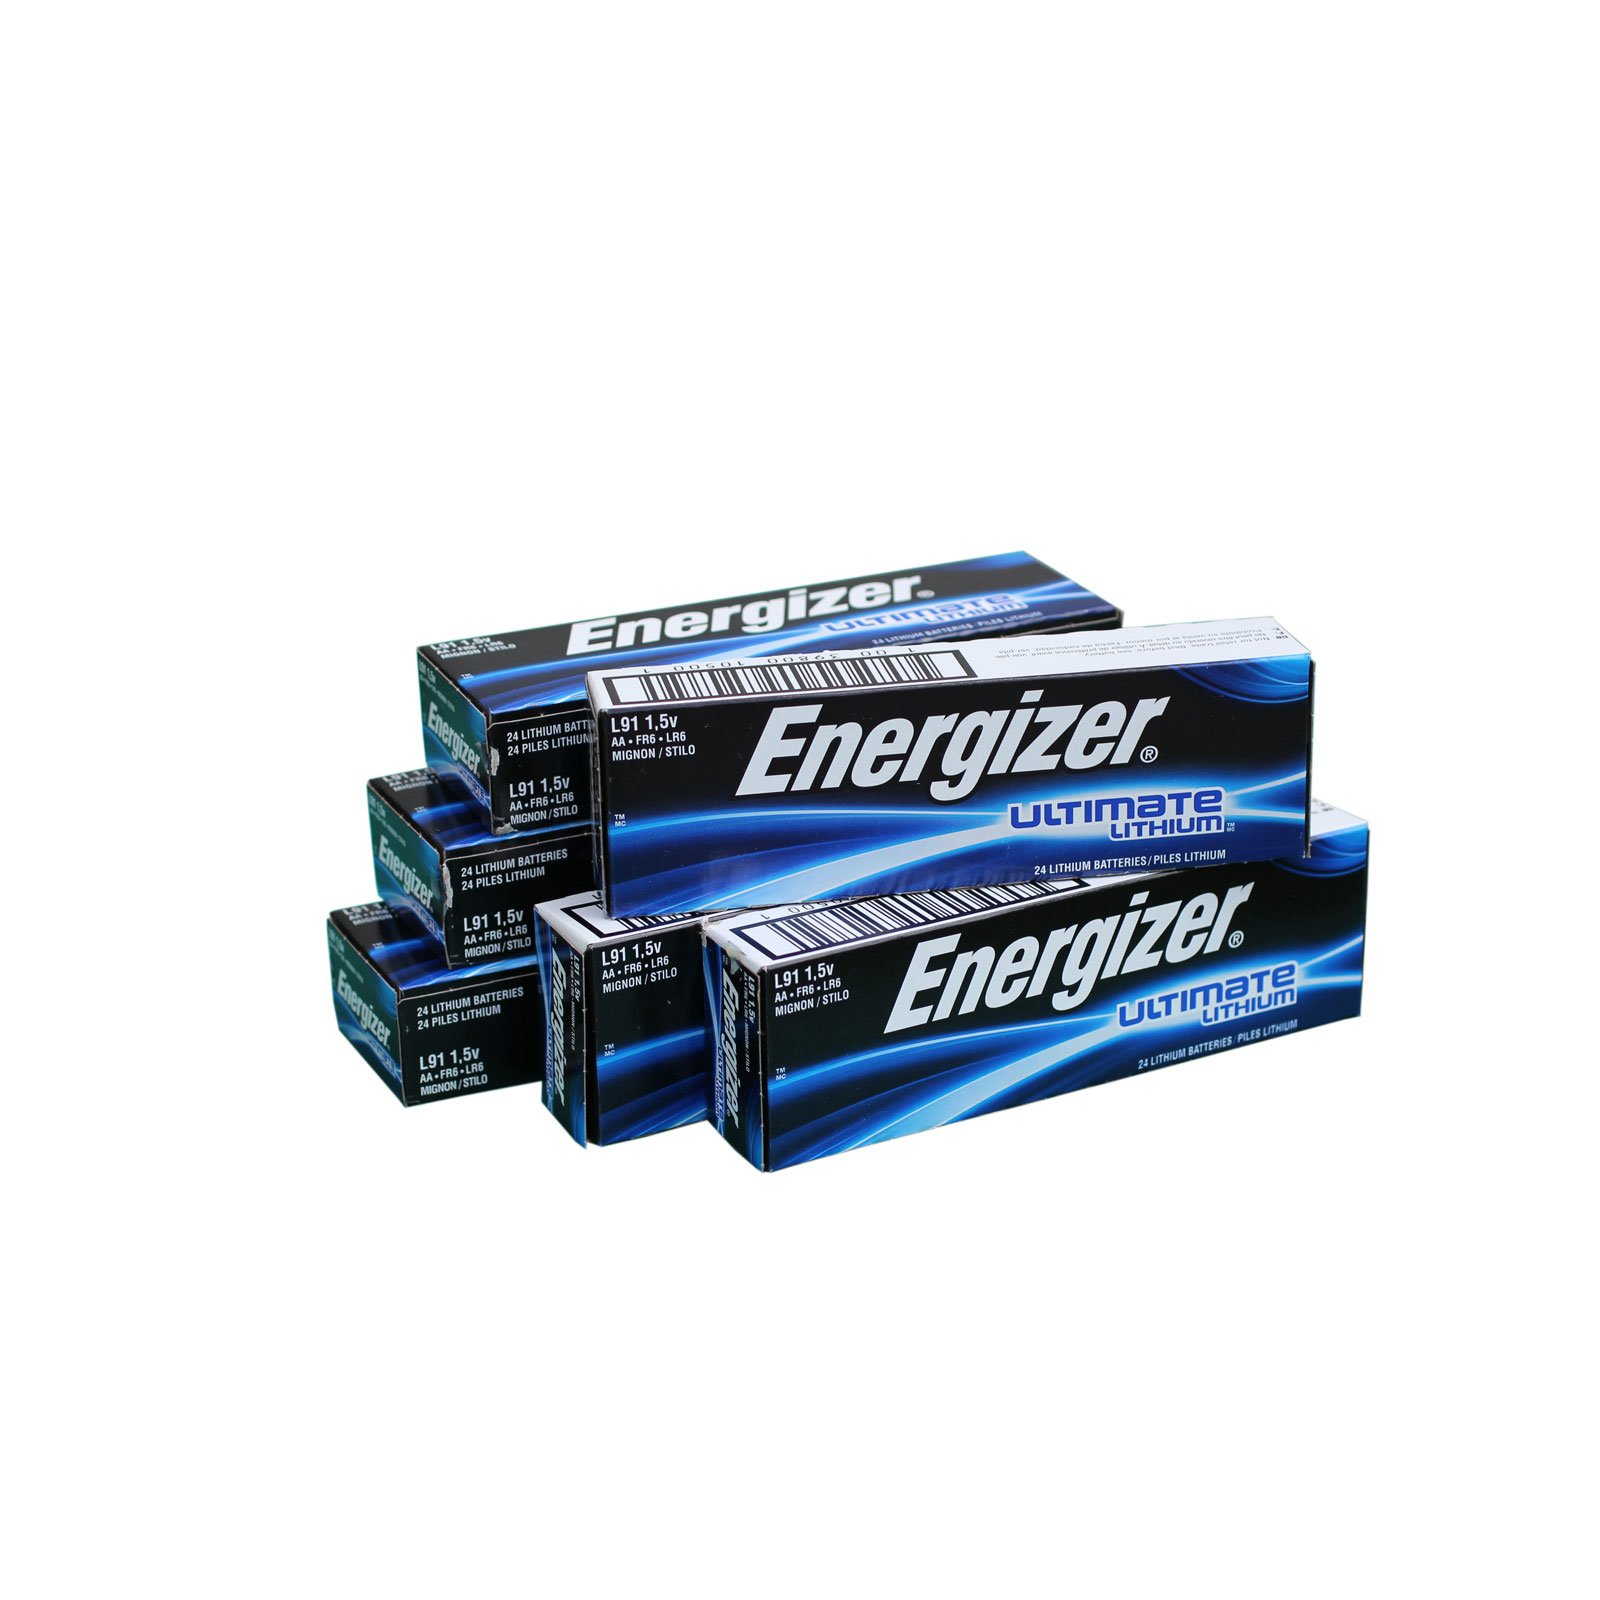 energizer aa ultimate lithium batteries 144 pack free shipping. Black Bedroom Furniture Sets. Home Design Ideas